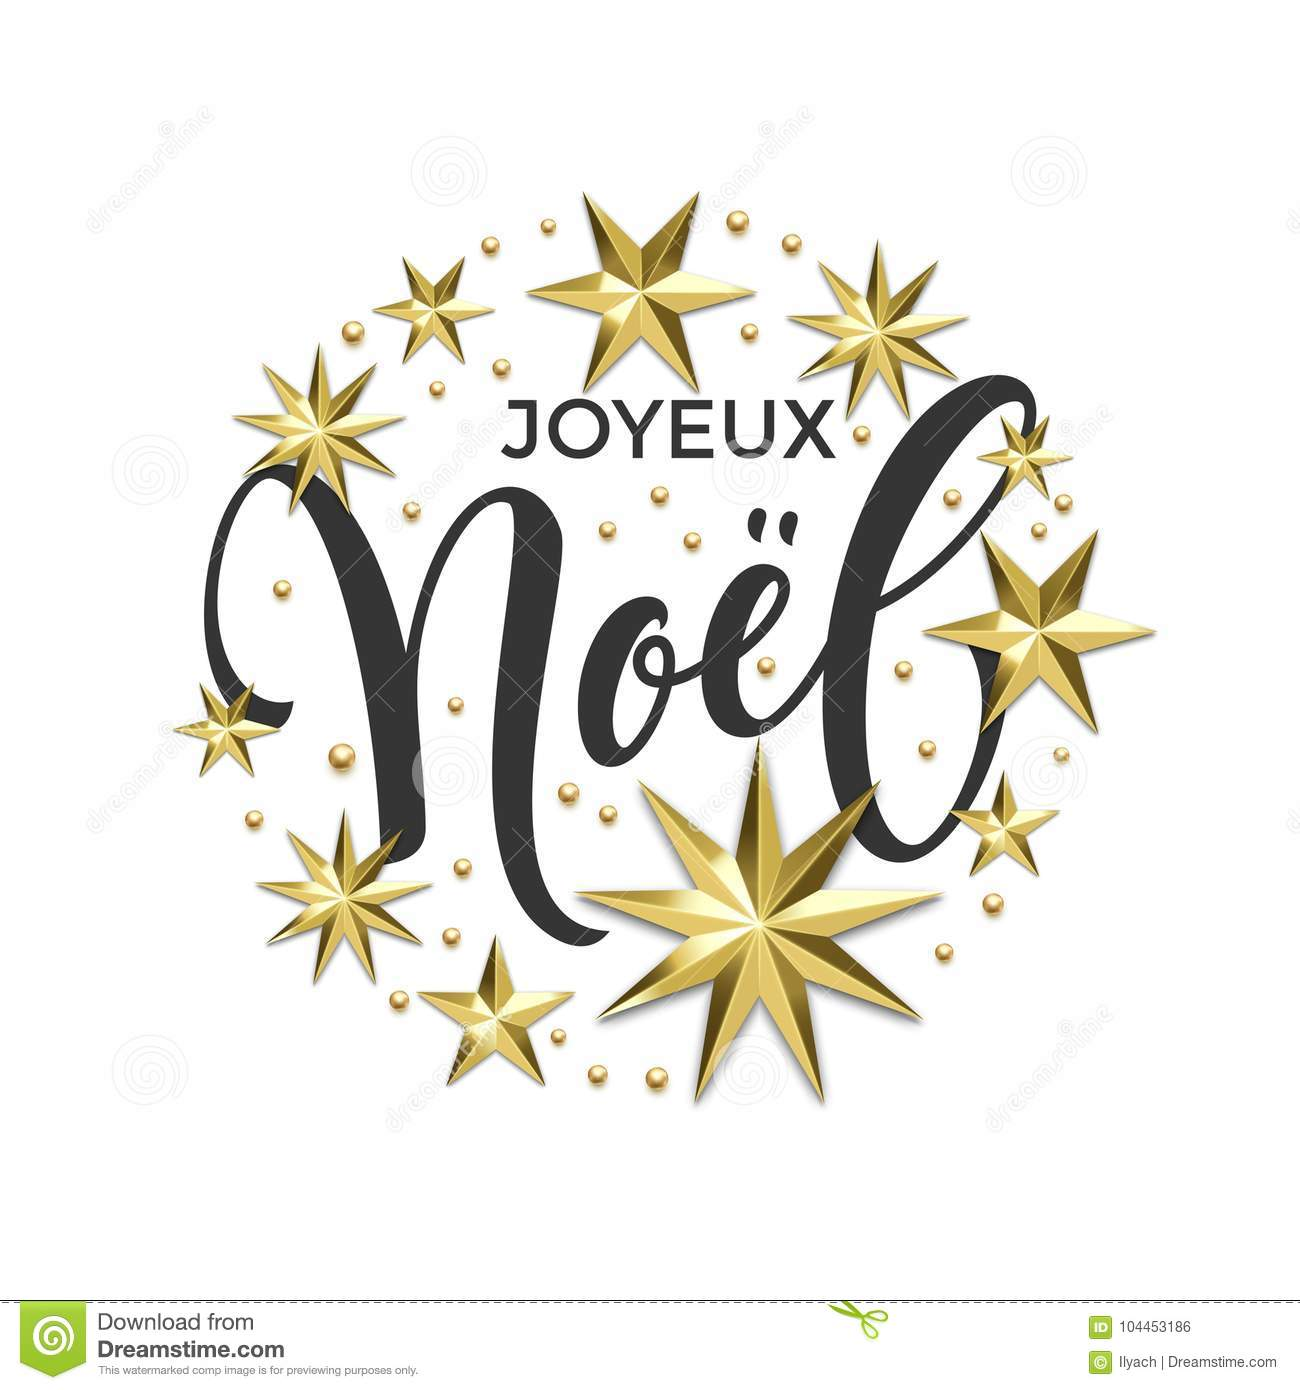 Joyeux Noel French Merry Christmas Golden Decoration Calligraphy